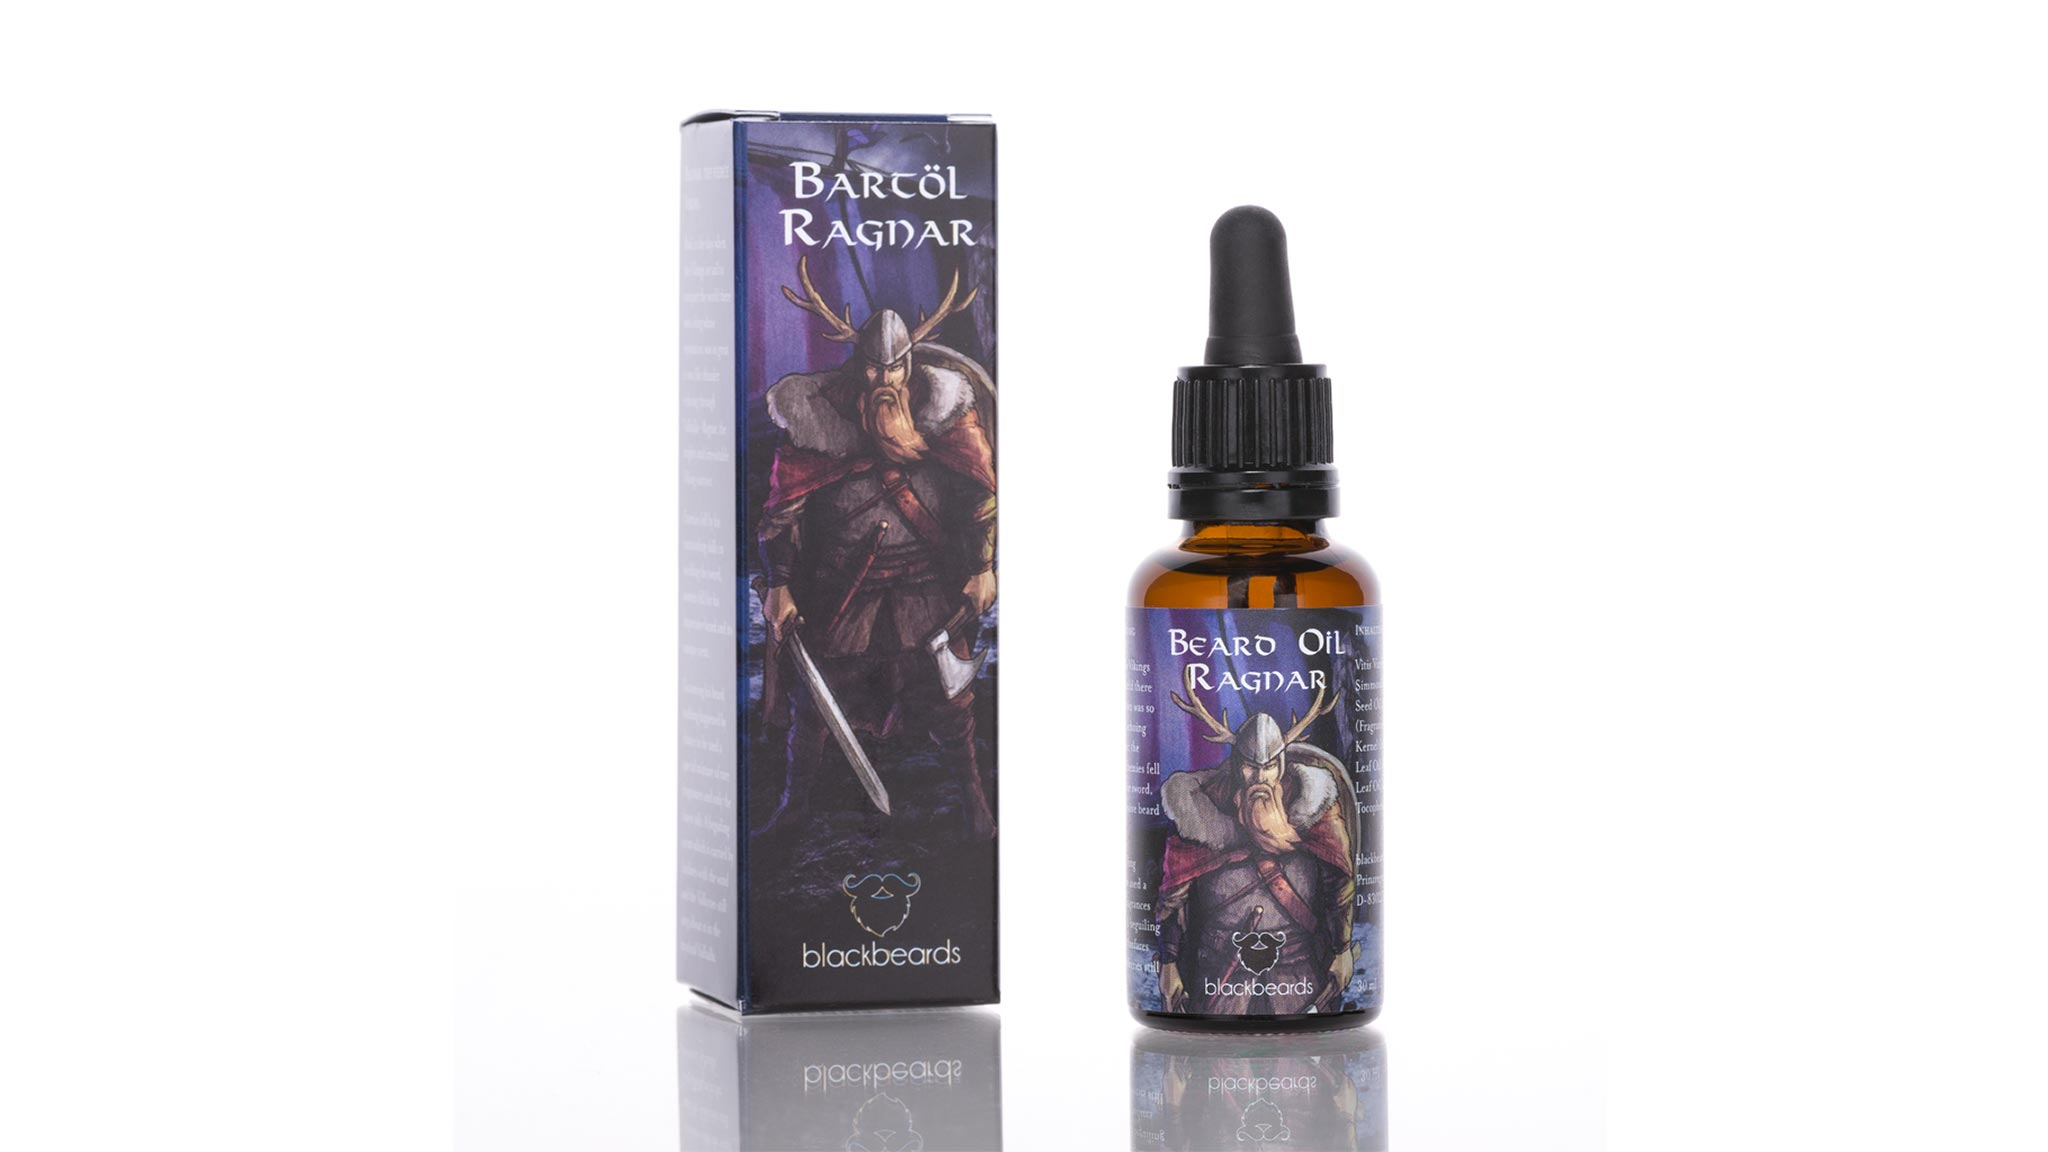 blackbeards Bartöl Ragnar 30ml